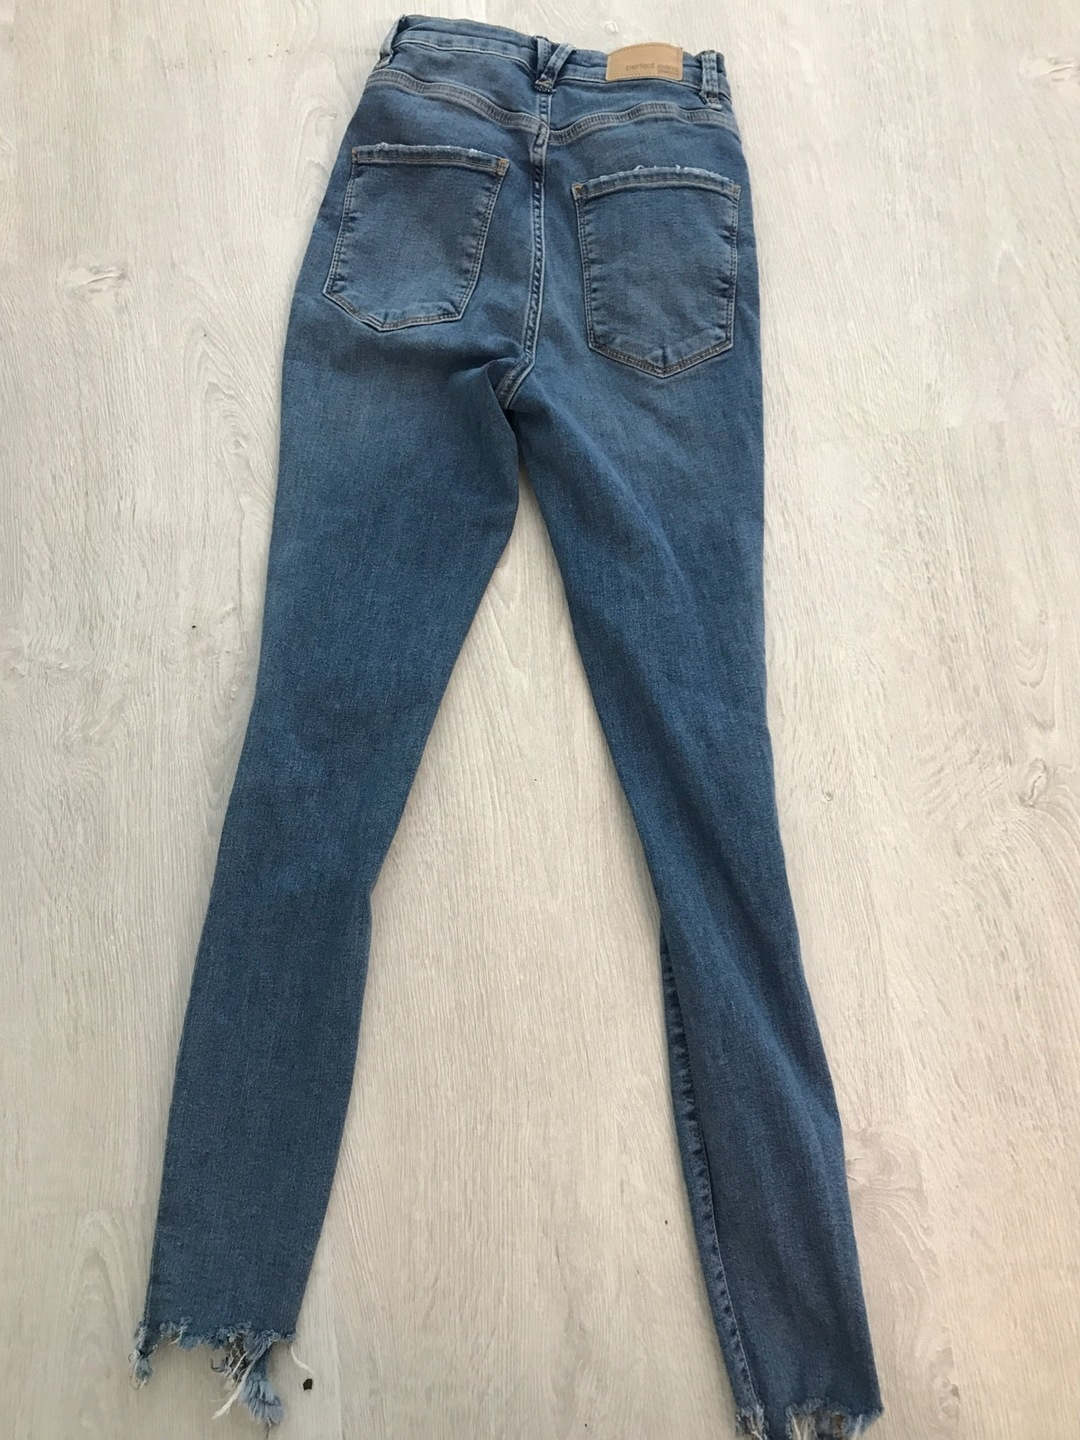 Women's trousers & jeans - GINA TRICOT photo 2